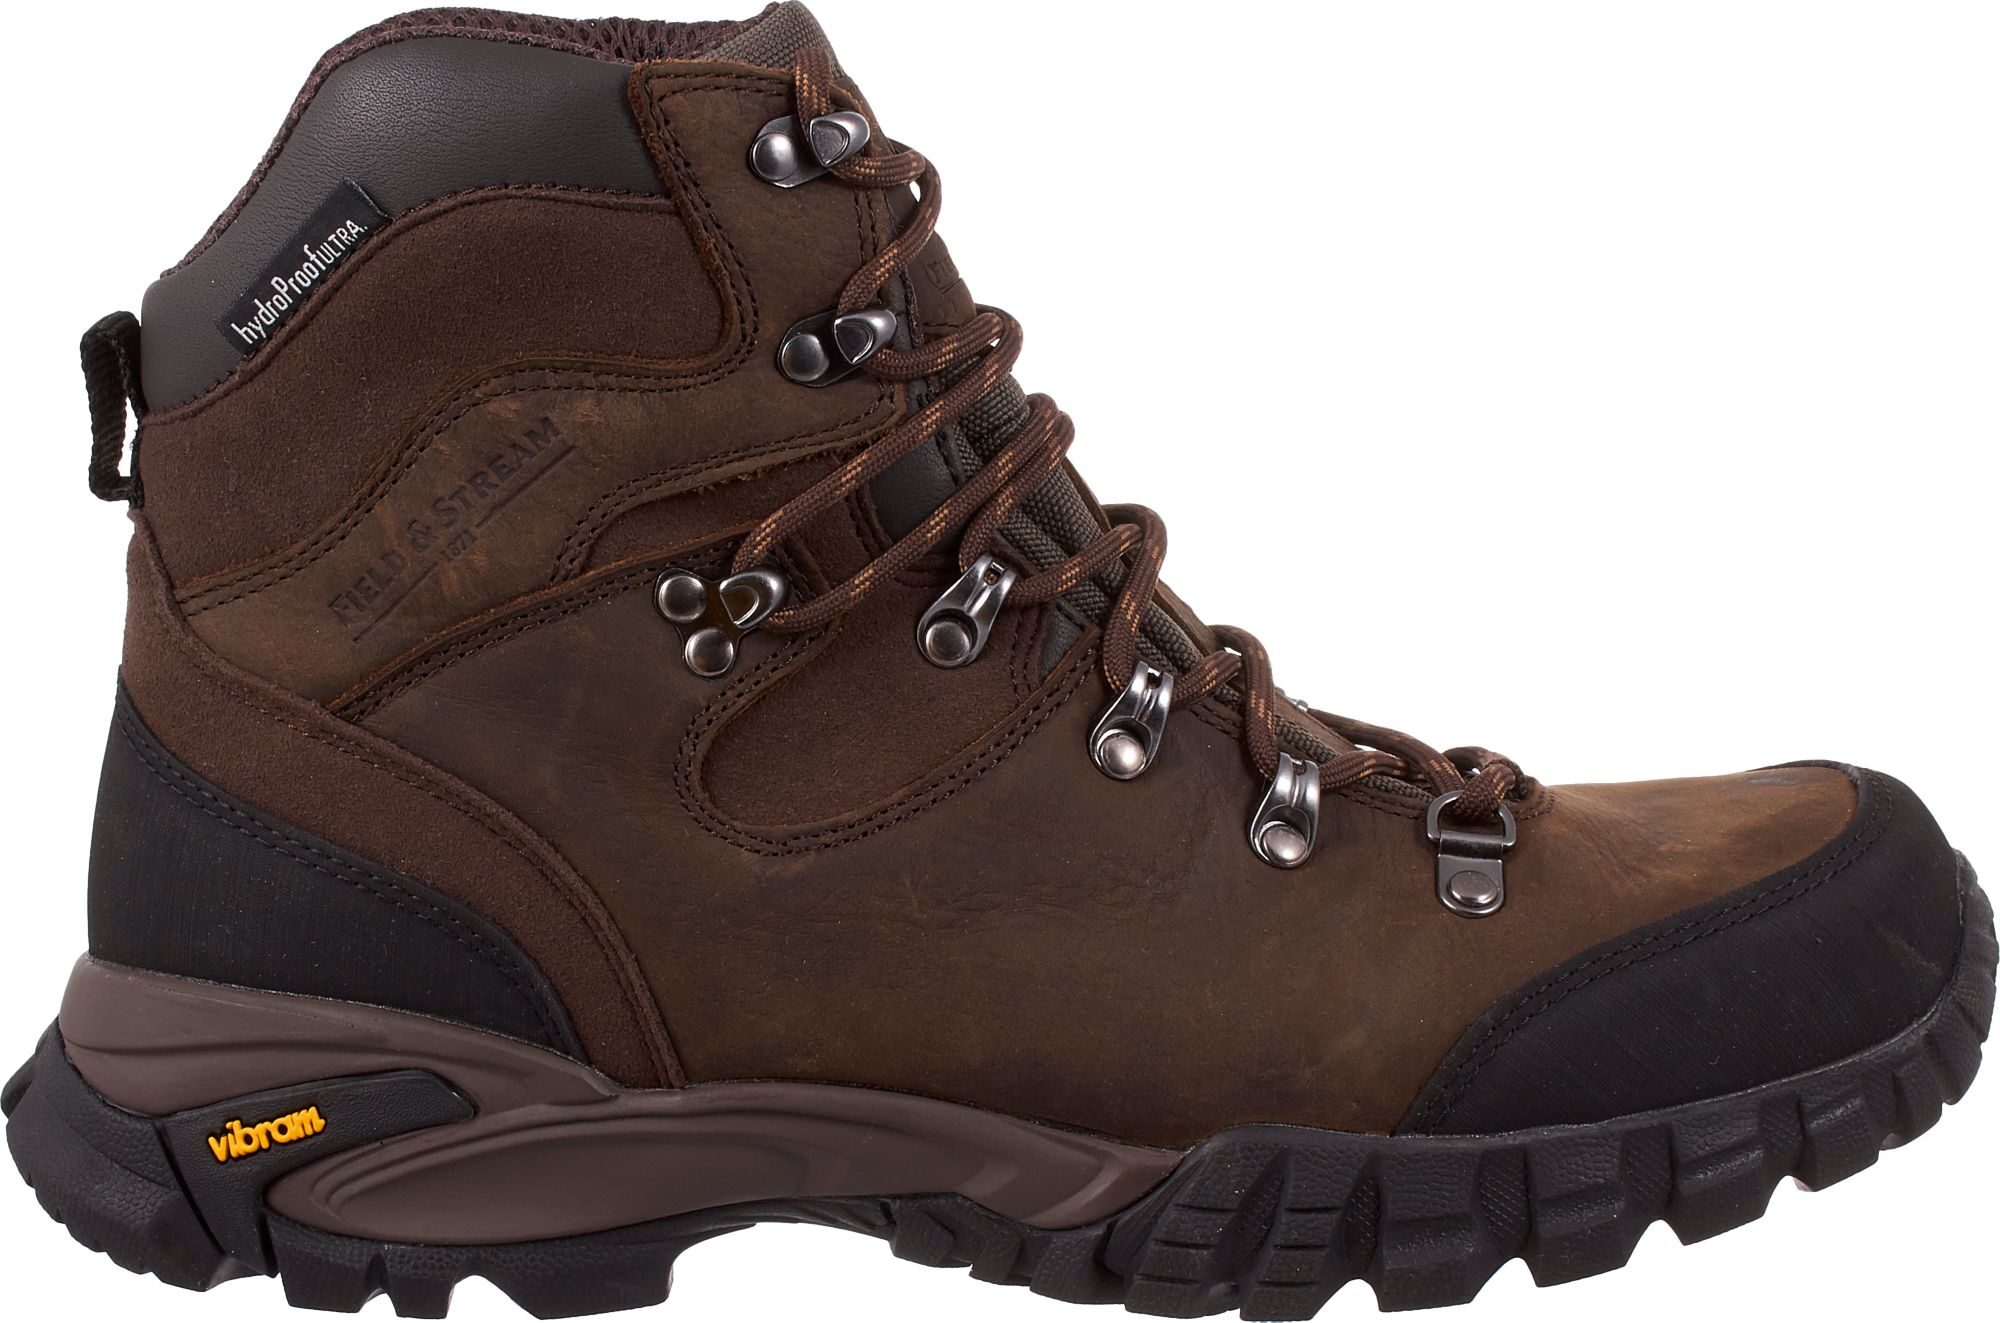 Field & Stream Men's Deep Creek Waterproof Hiking Boots| DICK'S ...